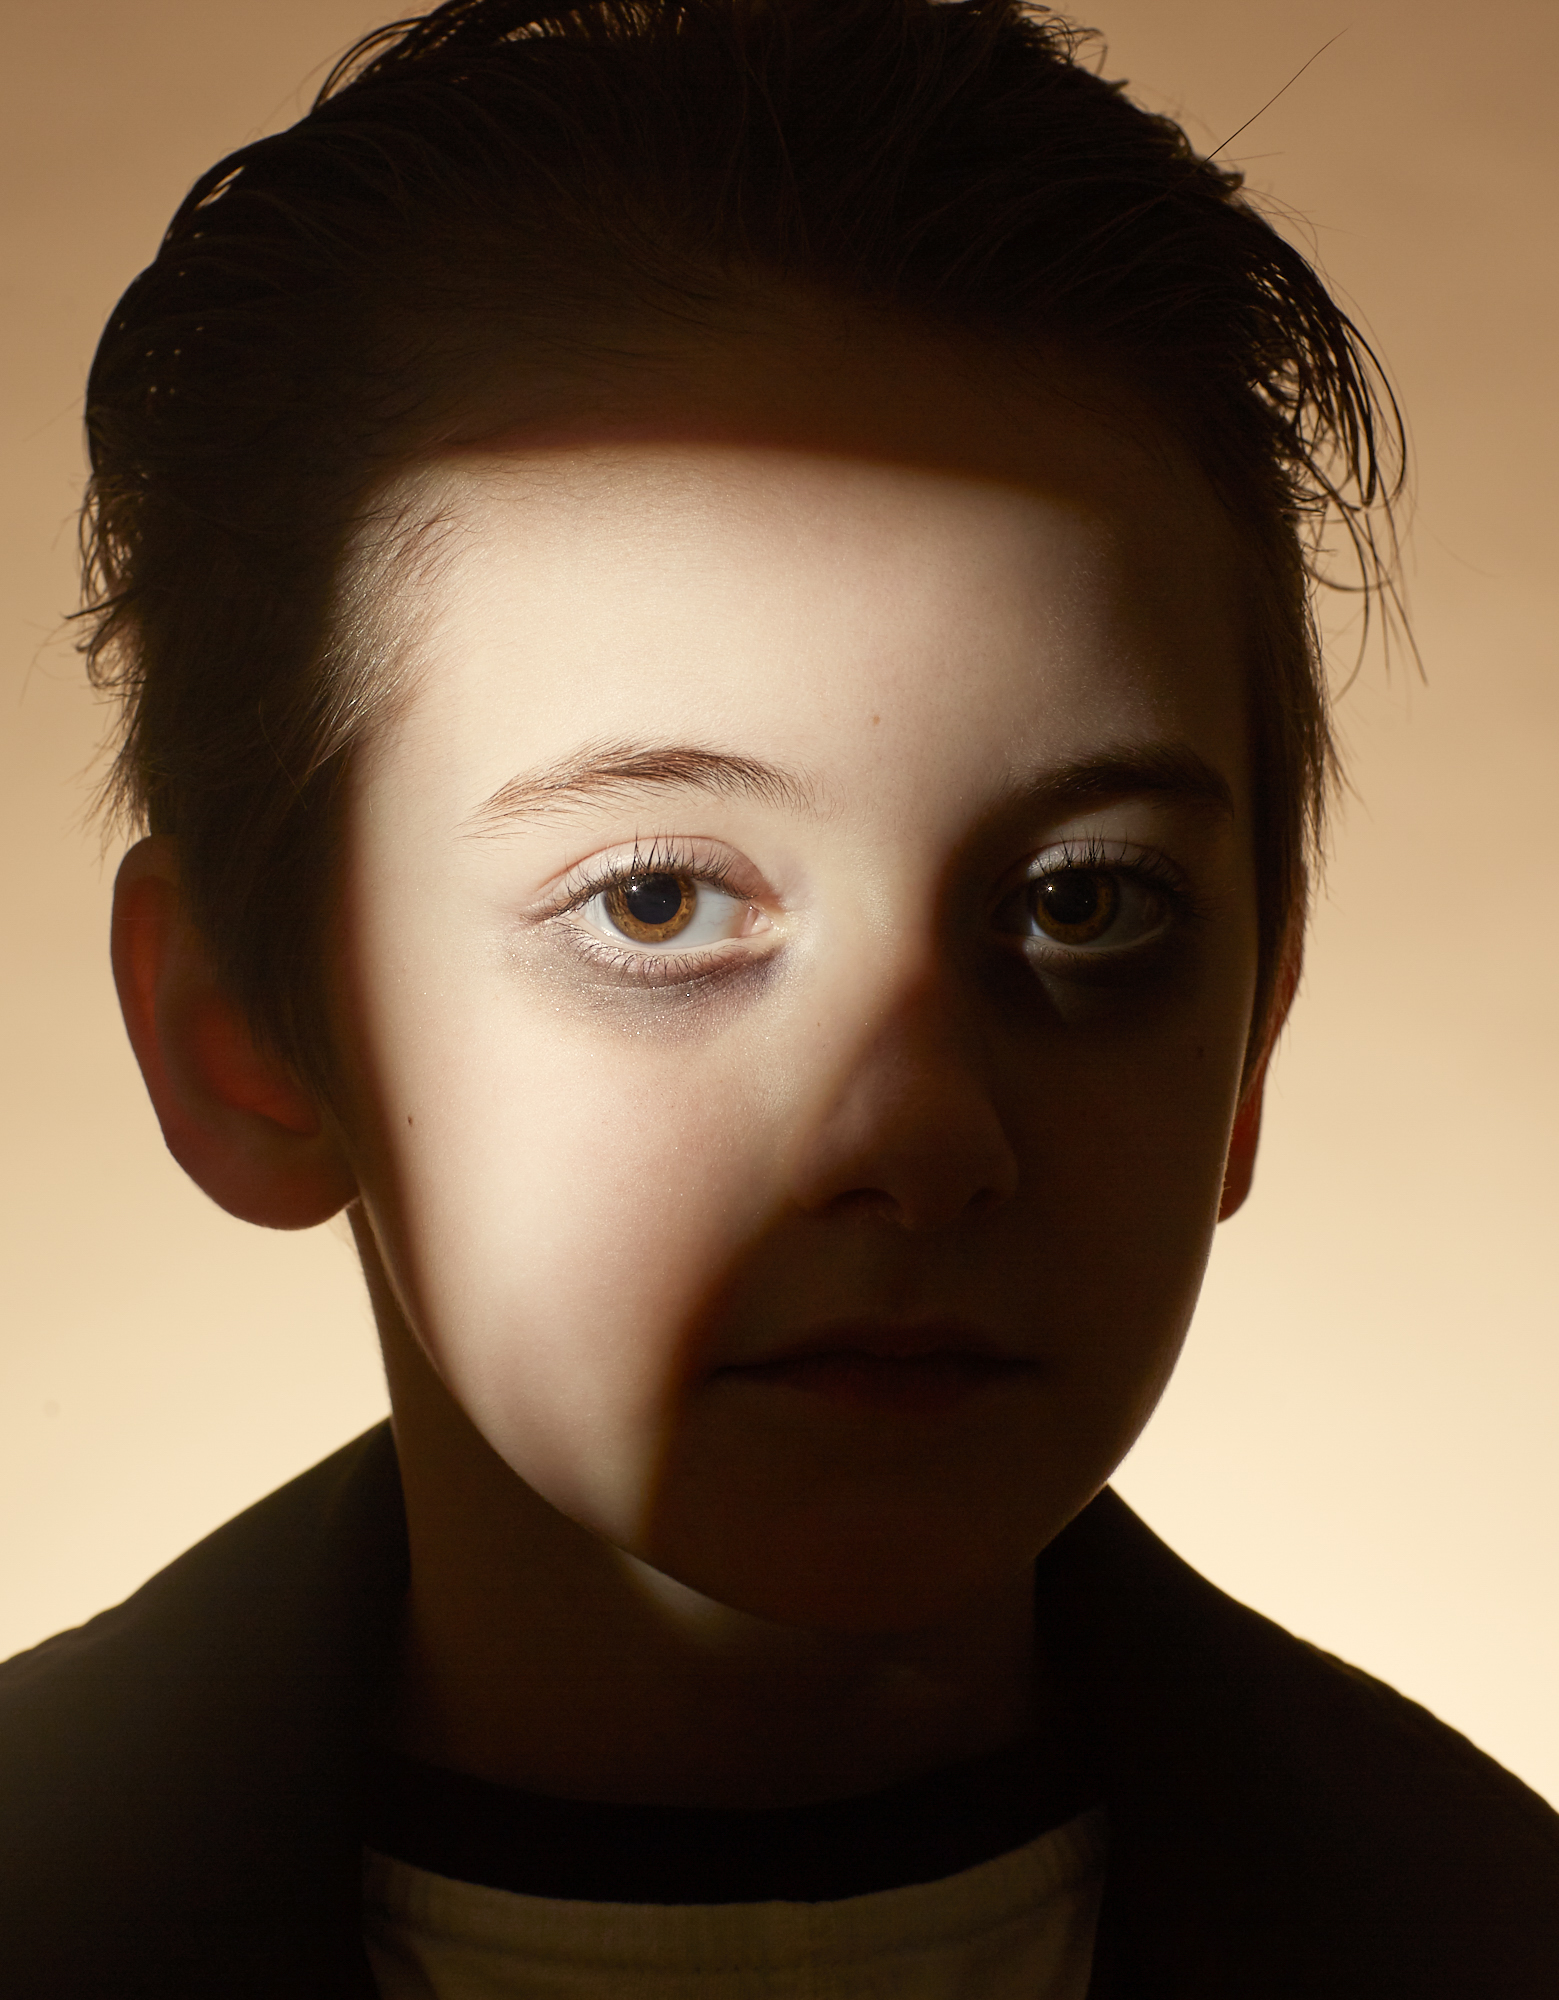 Portrait photography of a boy with light shining on part of his face.